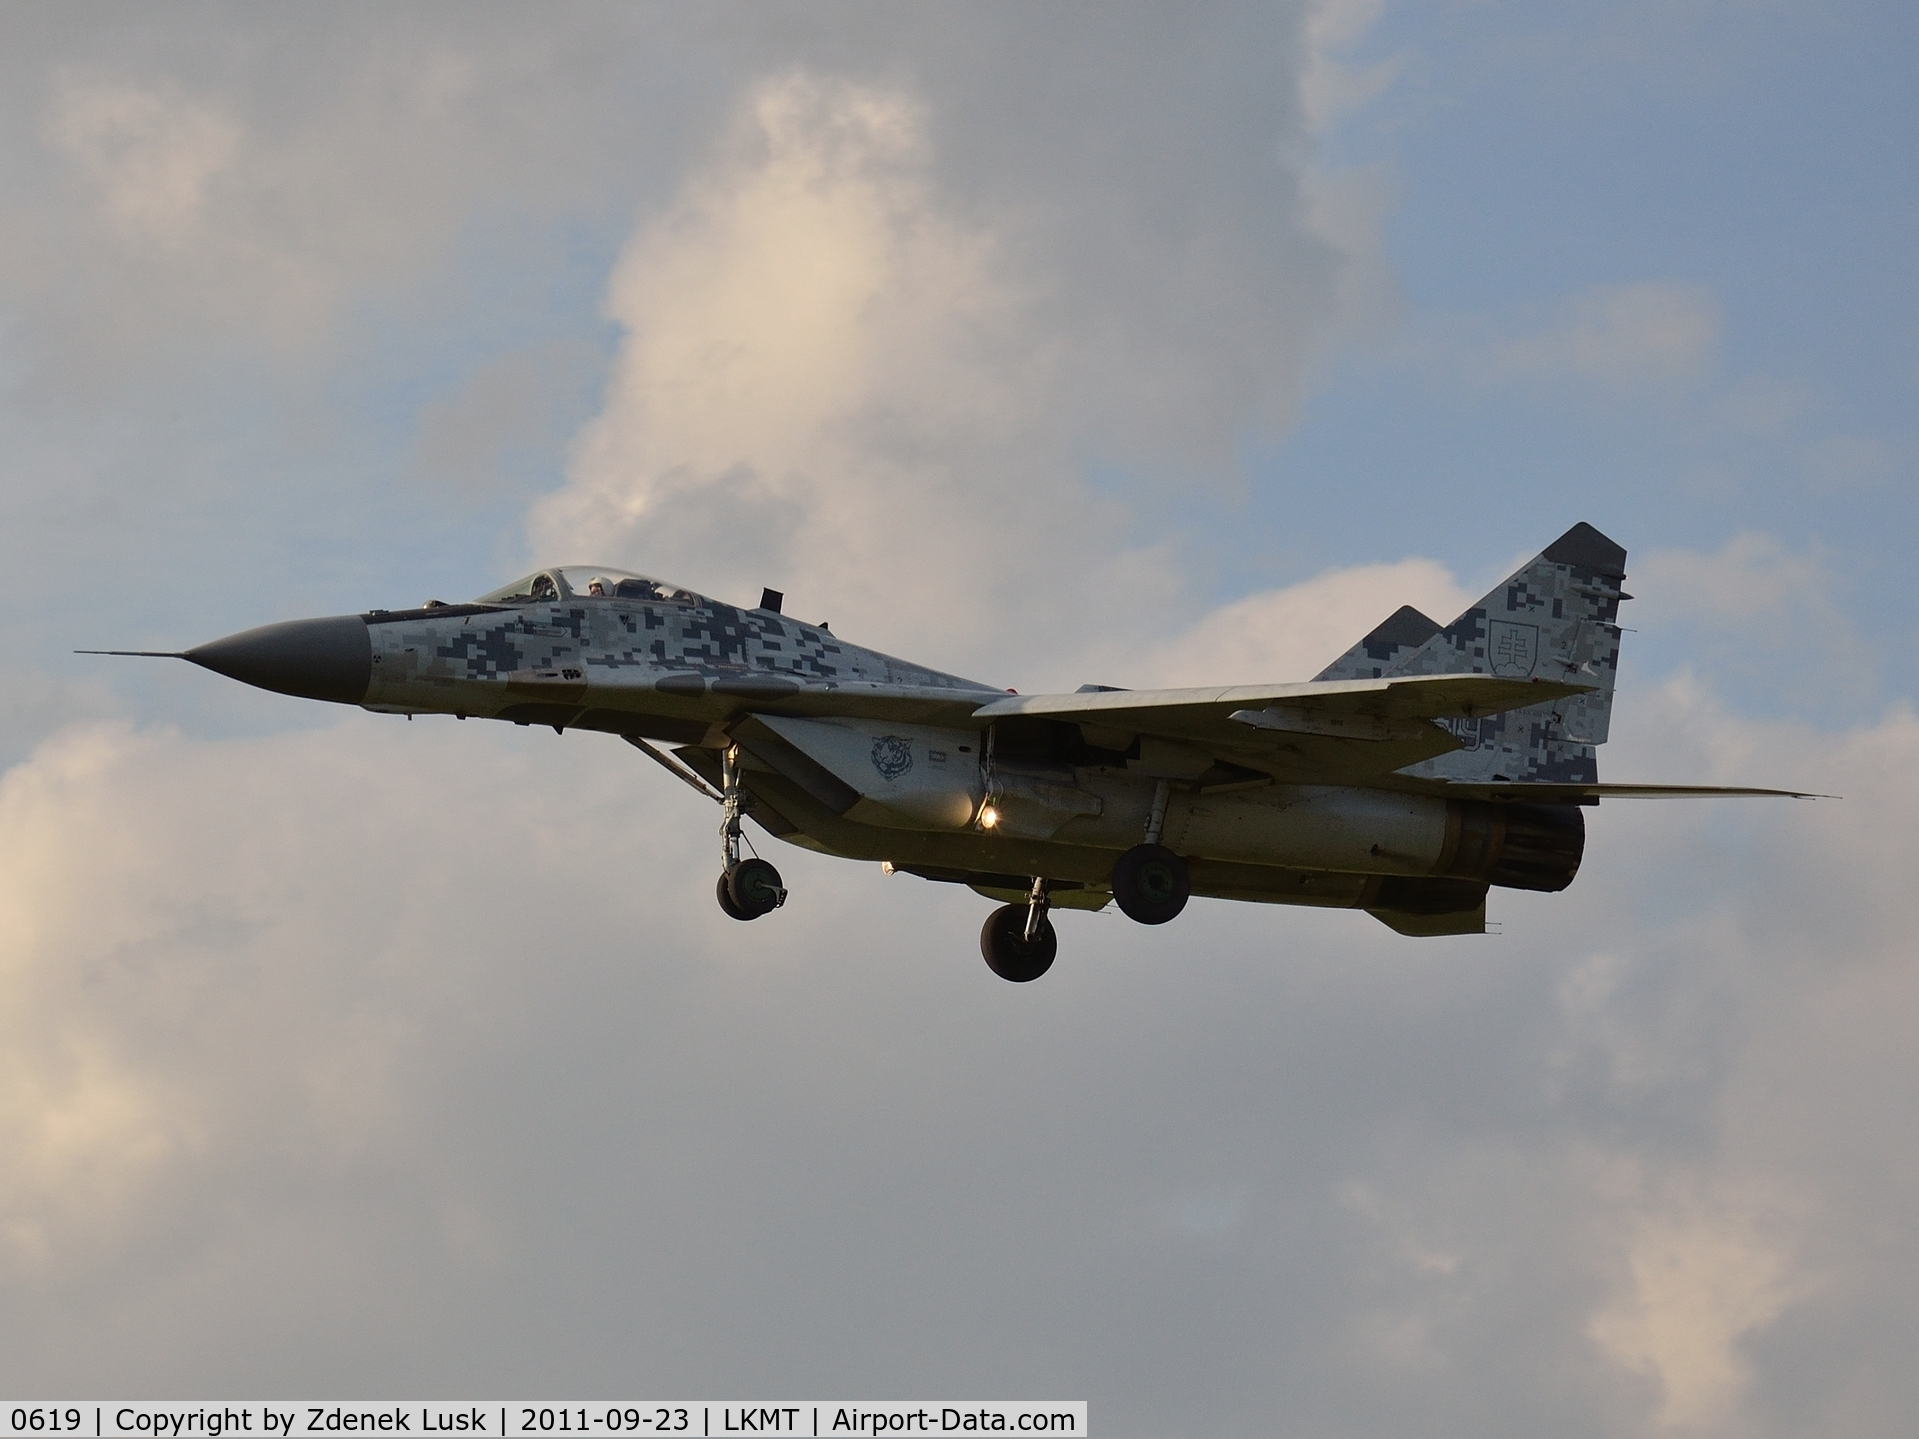 0619, Mikoyan-Gurevich MiG-29AS C/N 2960535406/4713, Arrival to Days of NATO 2011 event.